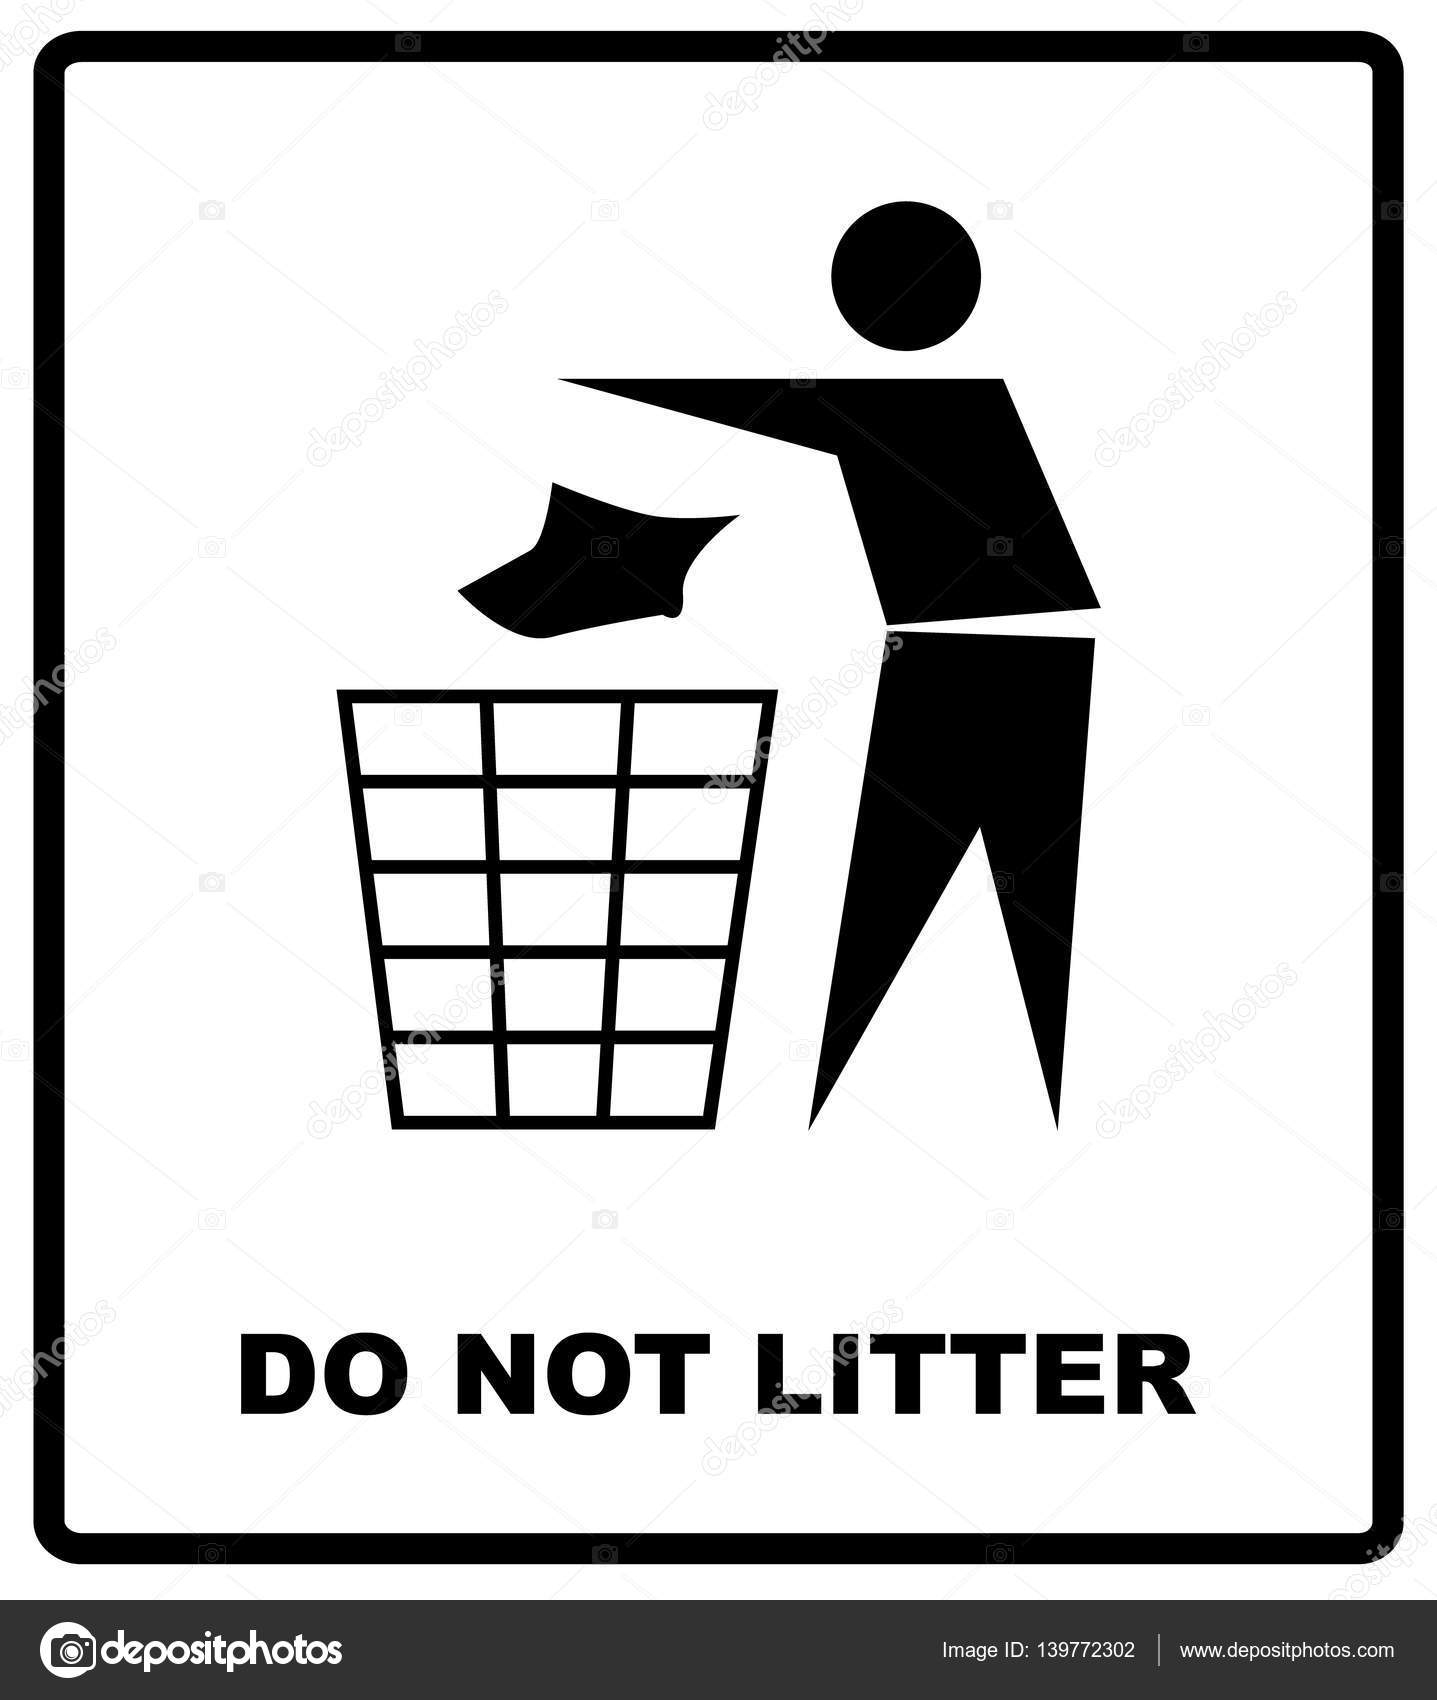 application to mark littered areas and locate trashcans These trash can floor signs are great for any 5s program or lean workplace- 5stodaycom 1-866-402-4776.